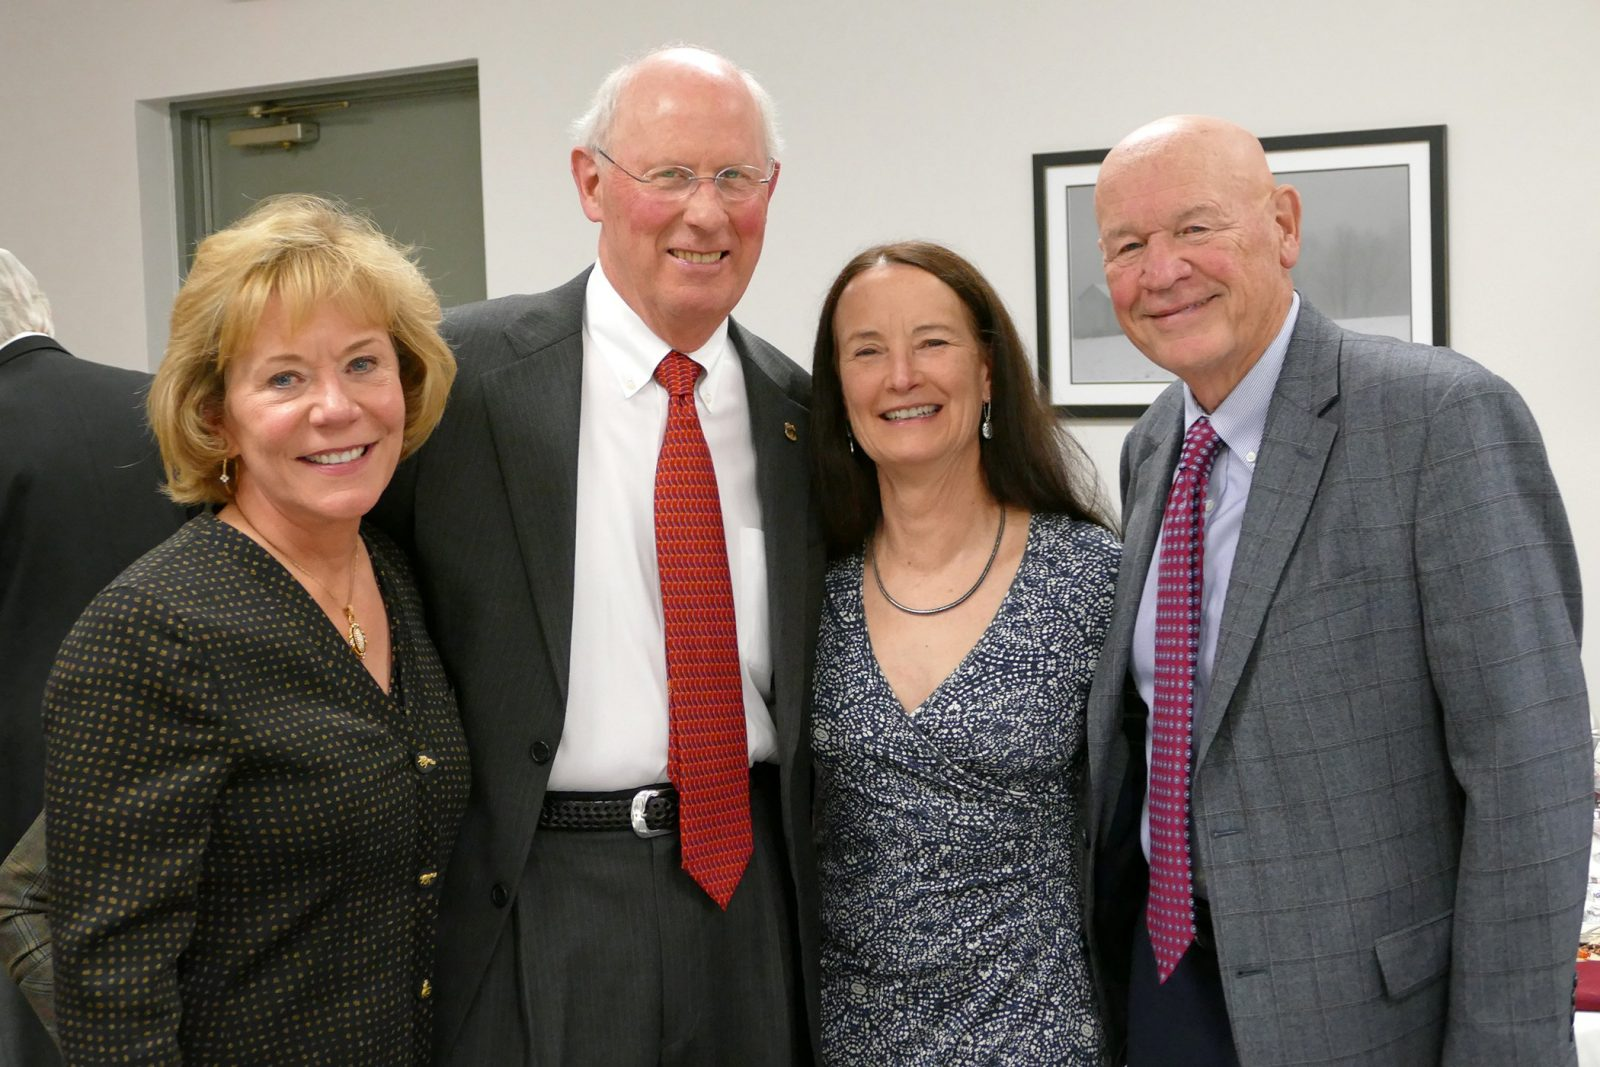 Cindy Ingram, Dr. Nathaniel White, Dr. Leslie Sinn, and Douglas Ingram